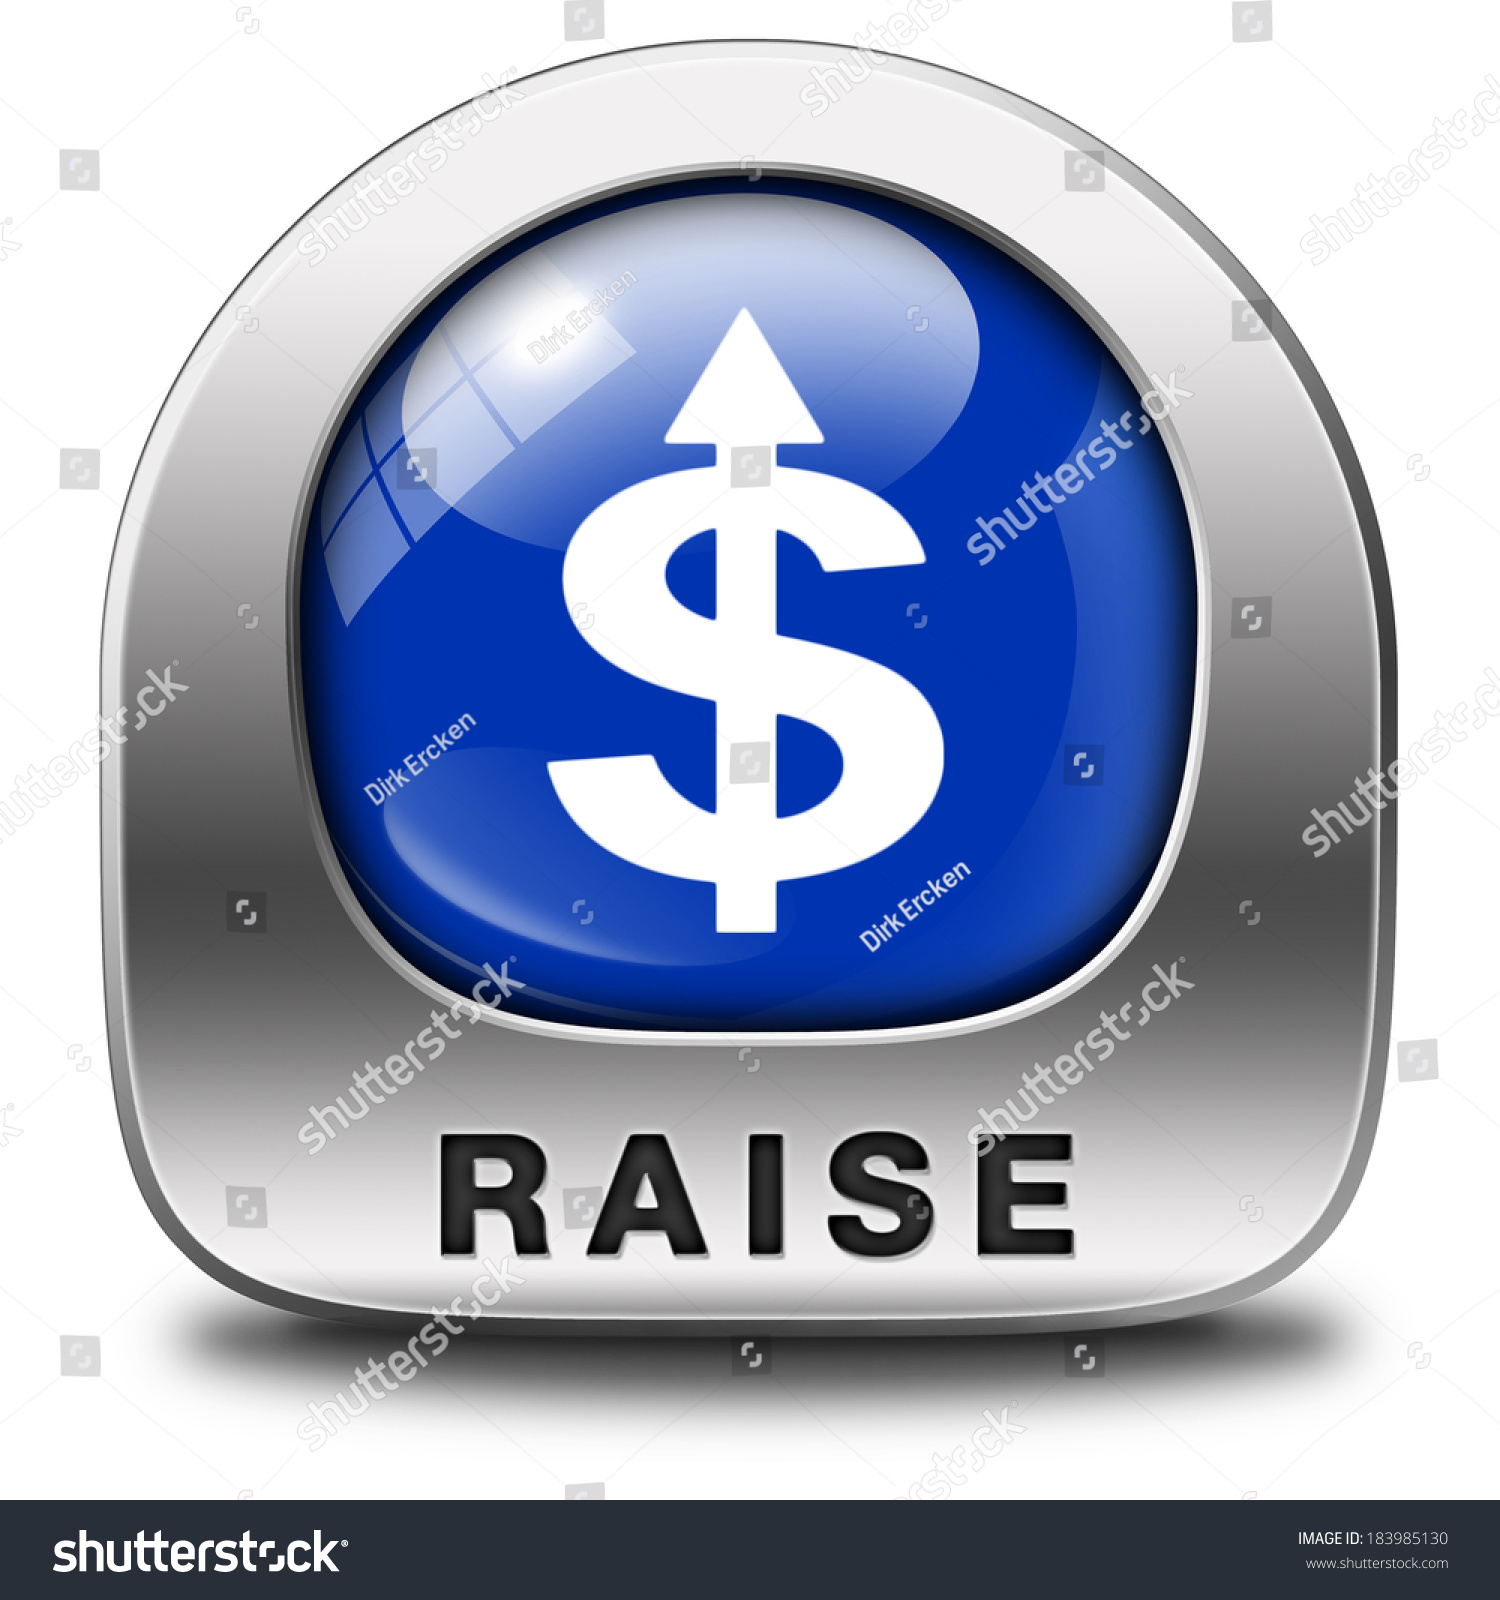 income raise rise higher salary pay stock illustration  income raise a rise in higher salary pay increase negotiation for job promotion